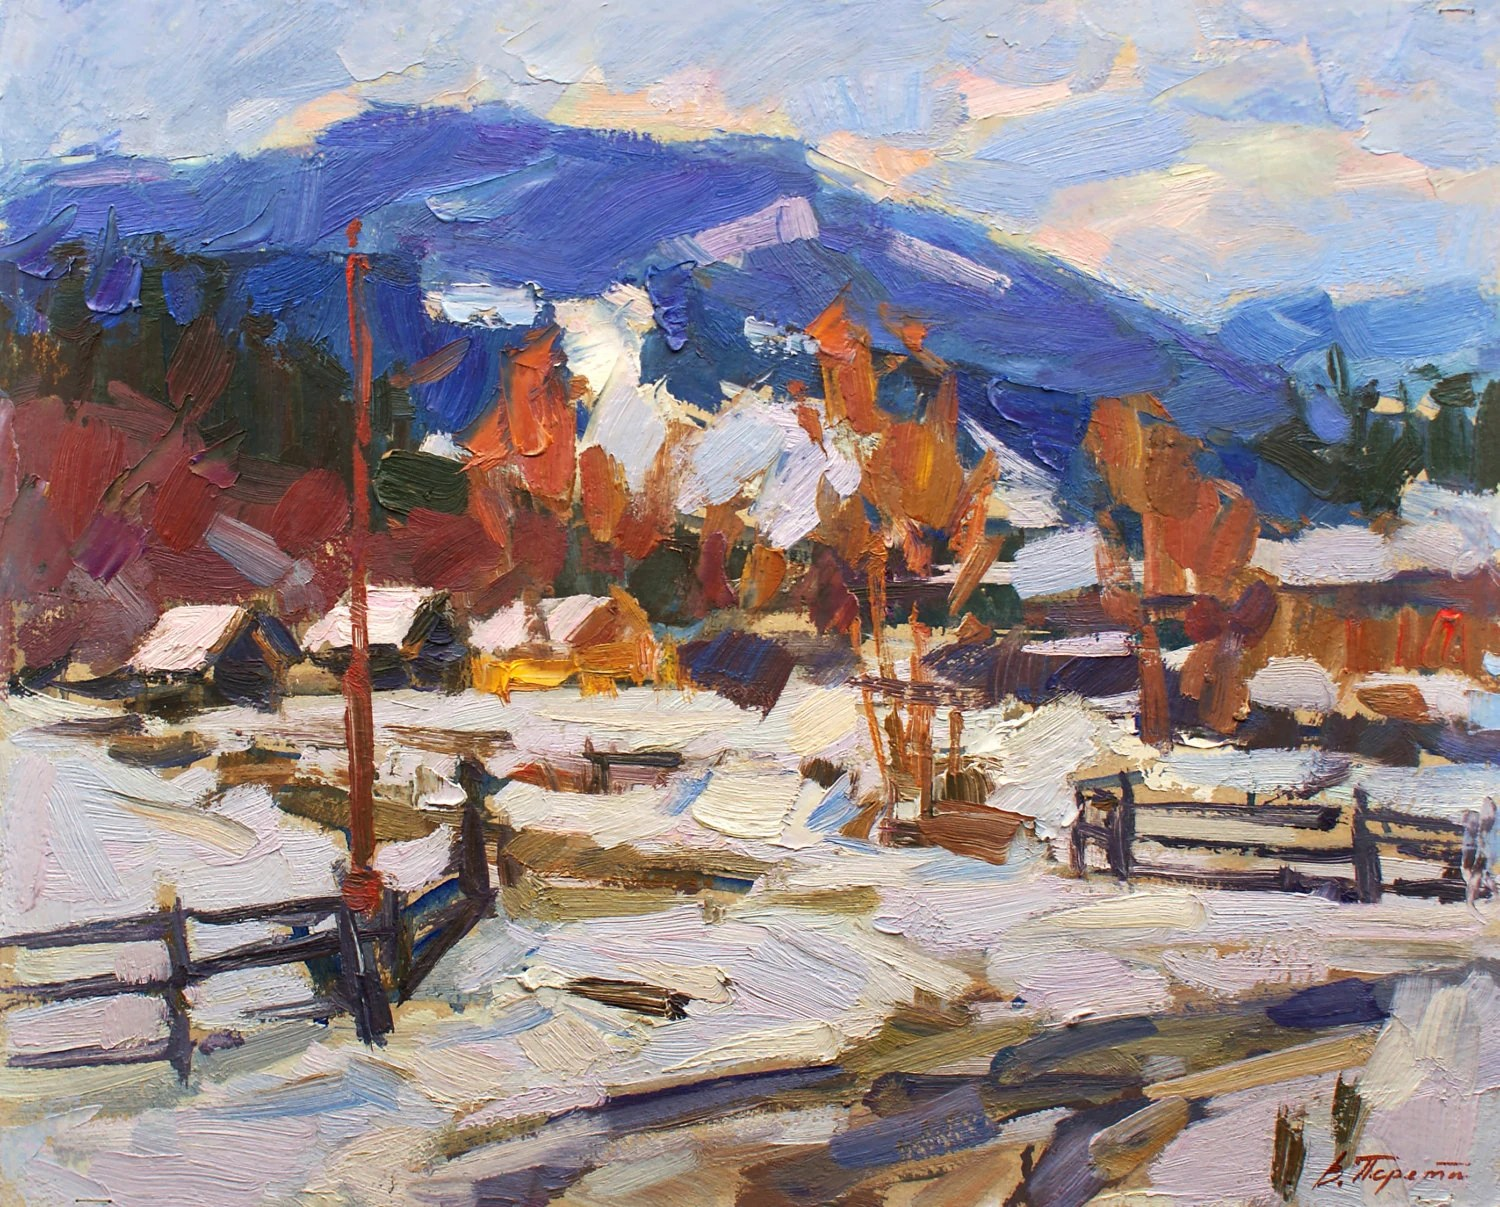 MOUNTAIN WINTER LANDSCAPE Original Oil Painting By Listed